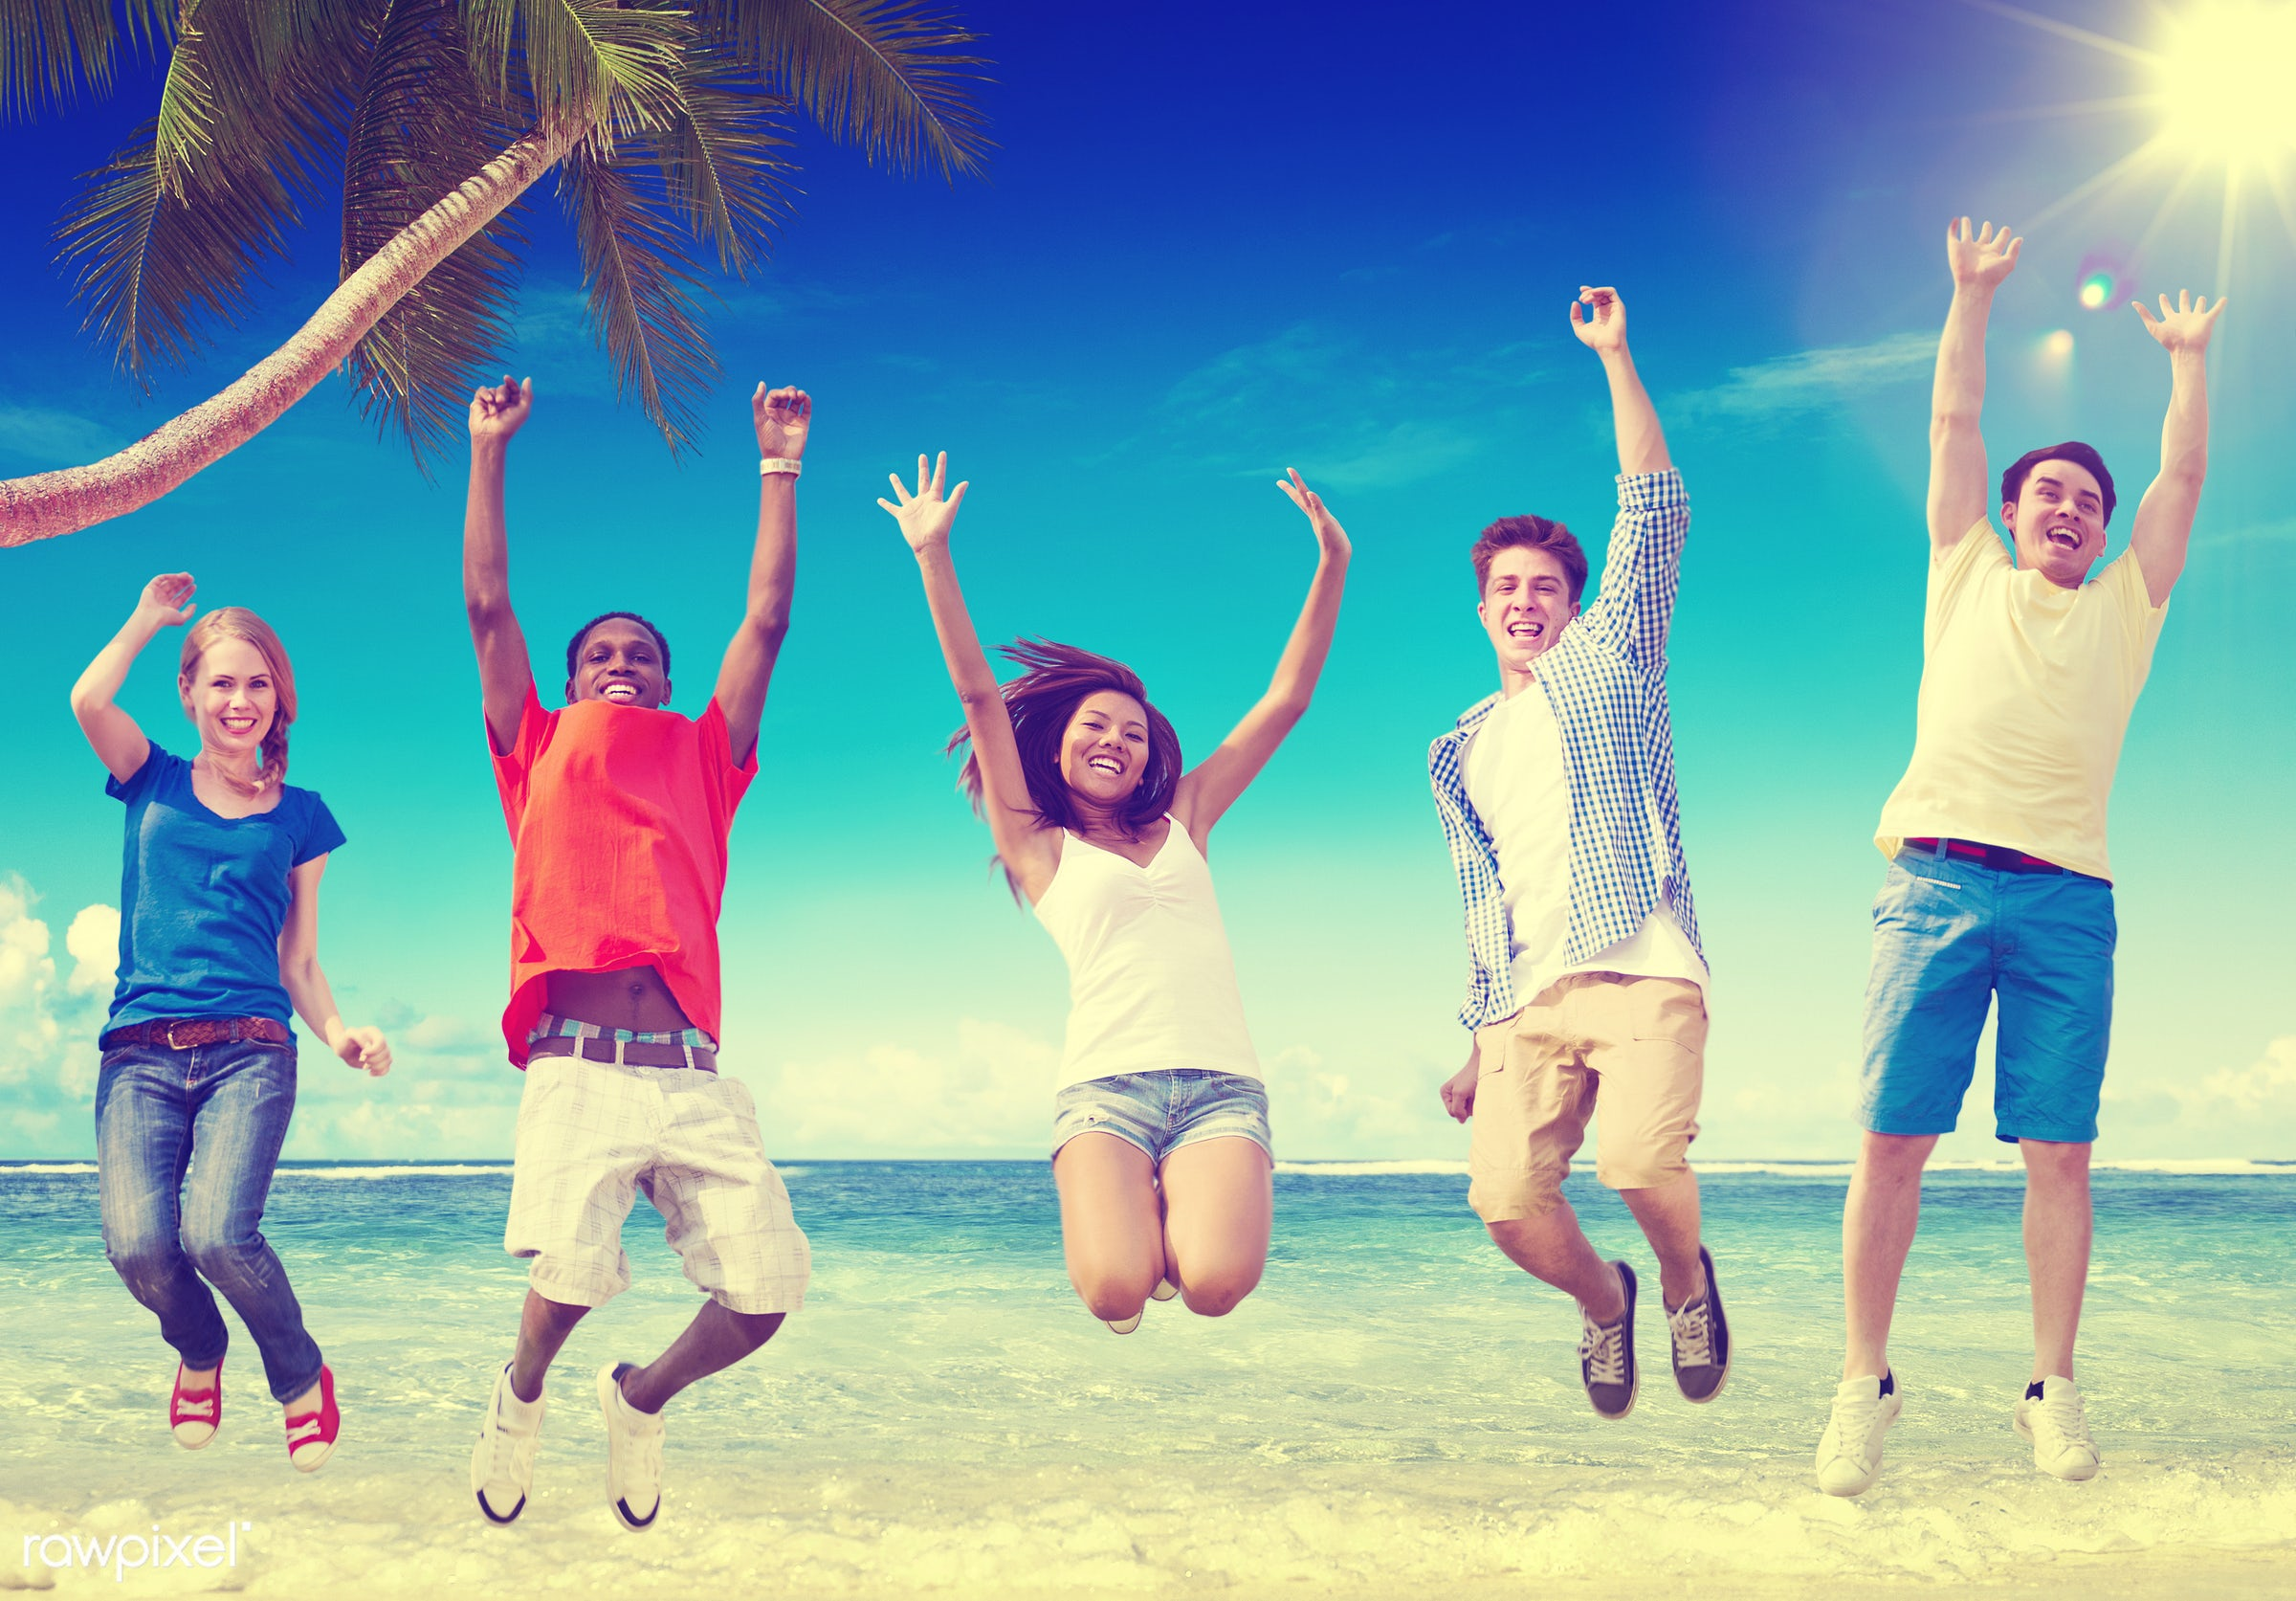 lifestyles, african, african american, african descent, arms outstretched, arms raised, asian, asian ethnicity, beach,...